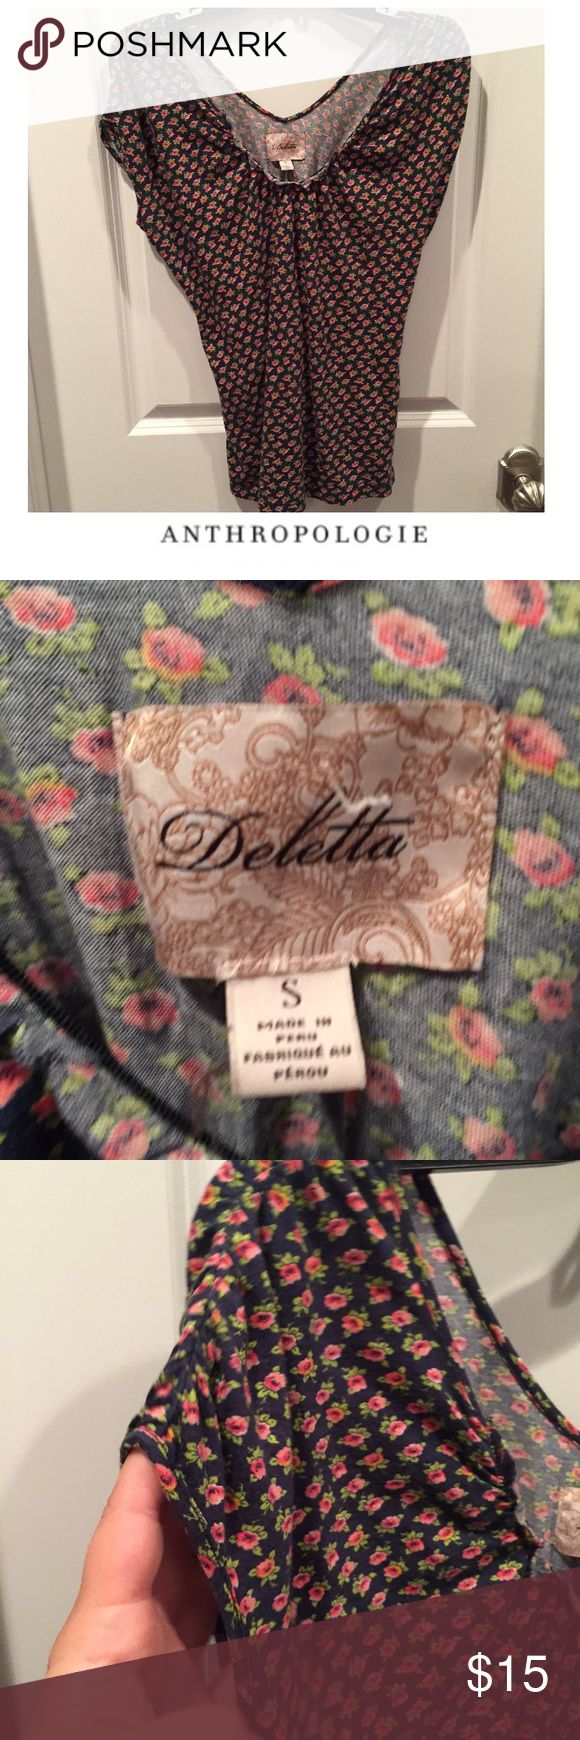 "Anthropologie Deletta Pink Flower Navy Tee Anthropologie Deletta Pink Flower Back Button Navy Tee. Bust is hard to measure because Dolman Sleeve, but is approx 17"". 25"" long. Gently worn. Great condition. Feel free to make an offer or bundle & save! Anthropologie Tops Tees - Short Sleeve"